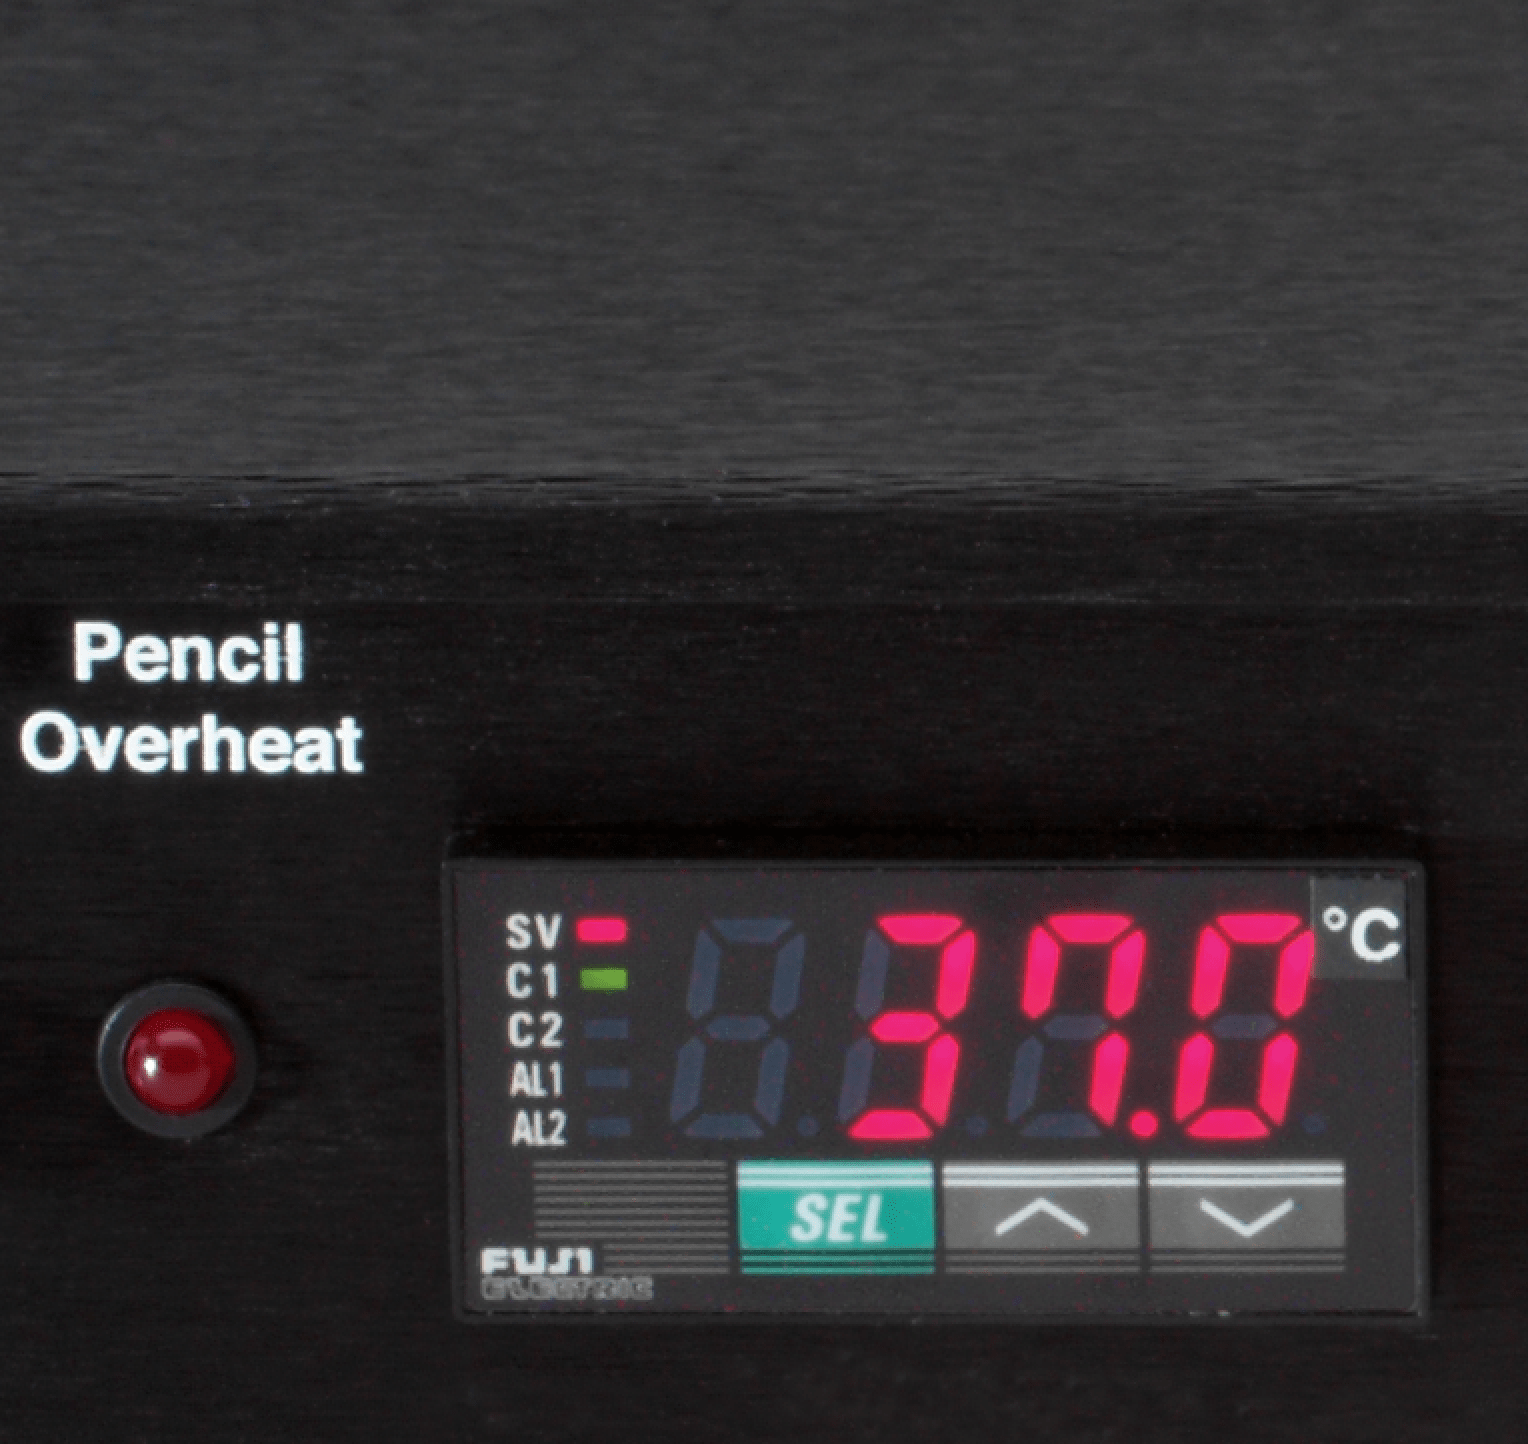 ThermoClamp LCD